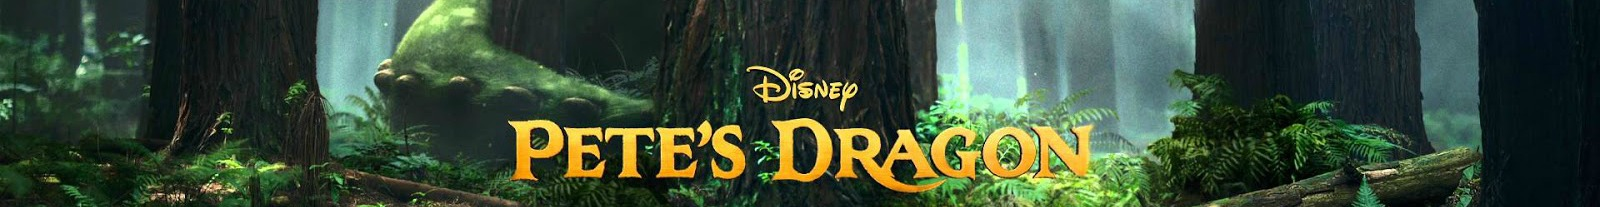 pete's dragon film banner